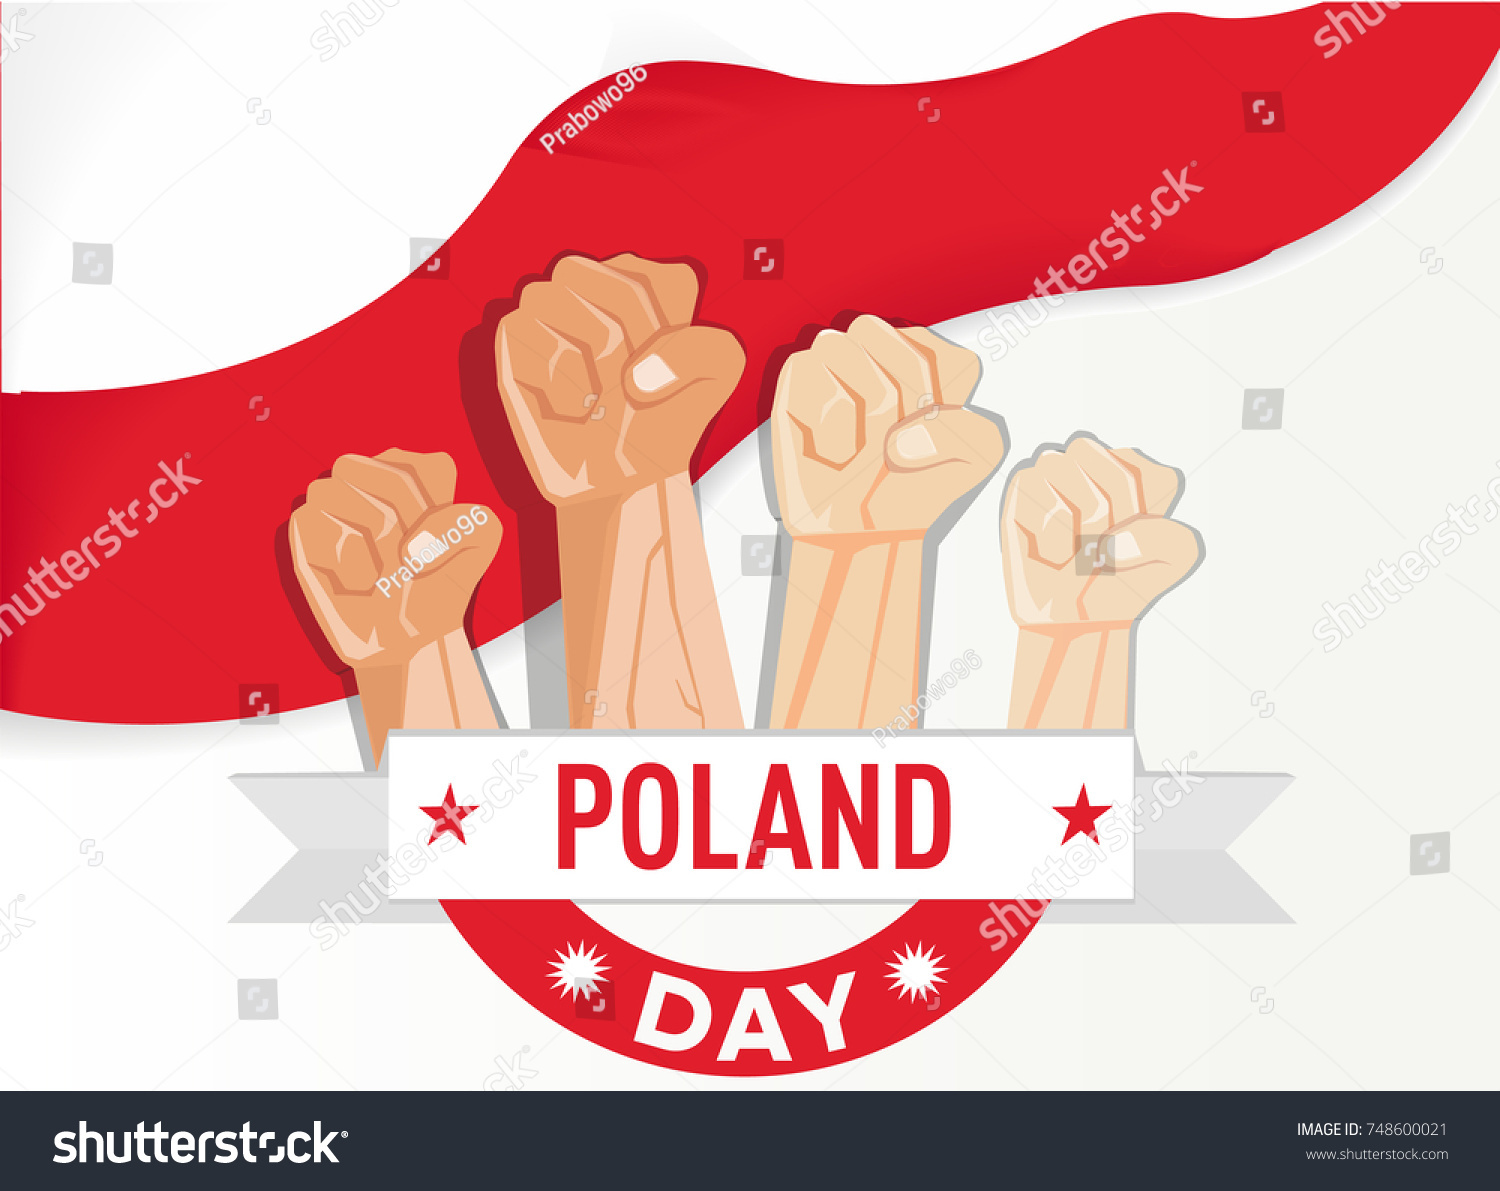 Hand fist arm symbol national awakening stock vector 748600021 hand fist arm the symbol of national awakening day and poland independence day with poland biocorpaavc